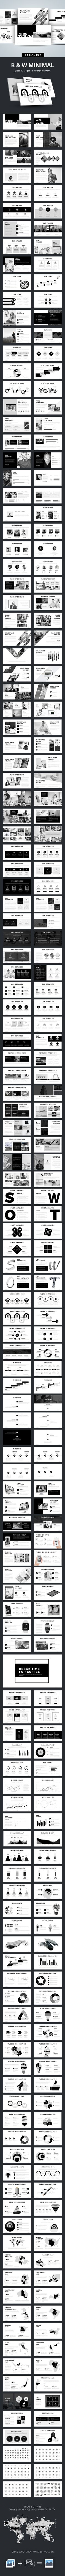 #B&W Elegant #Powerpoint Templates - Business PowerPoint Templates